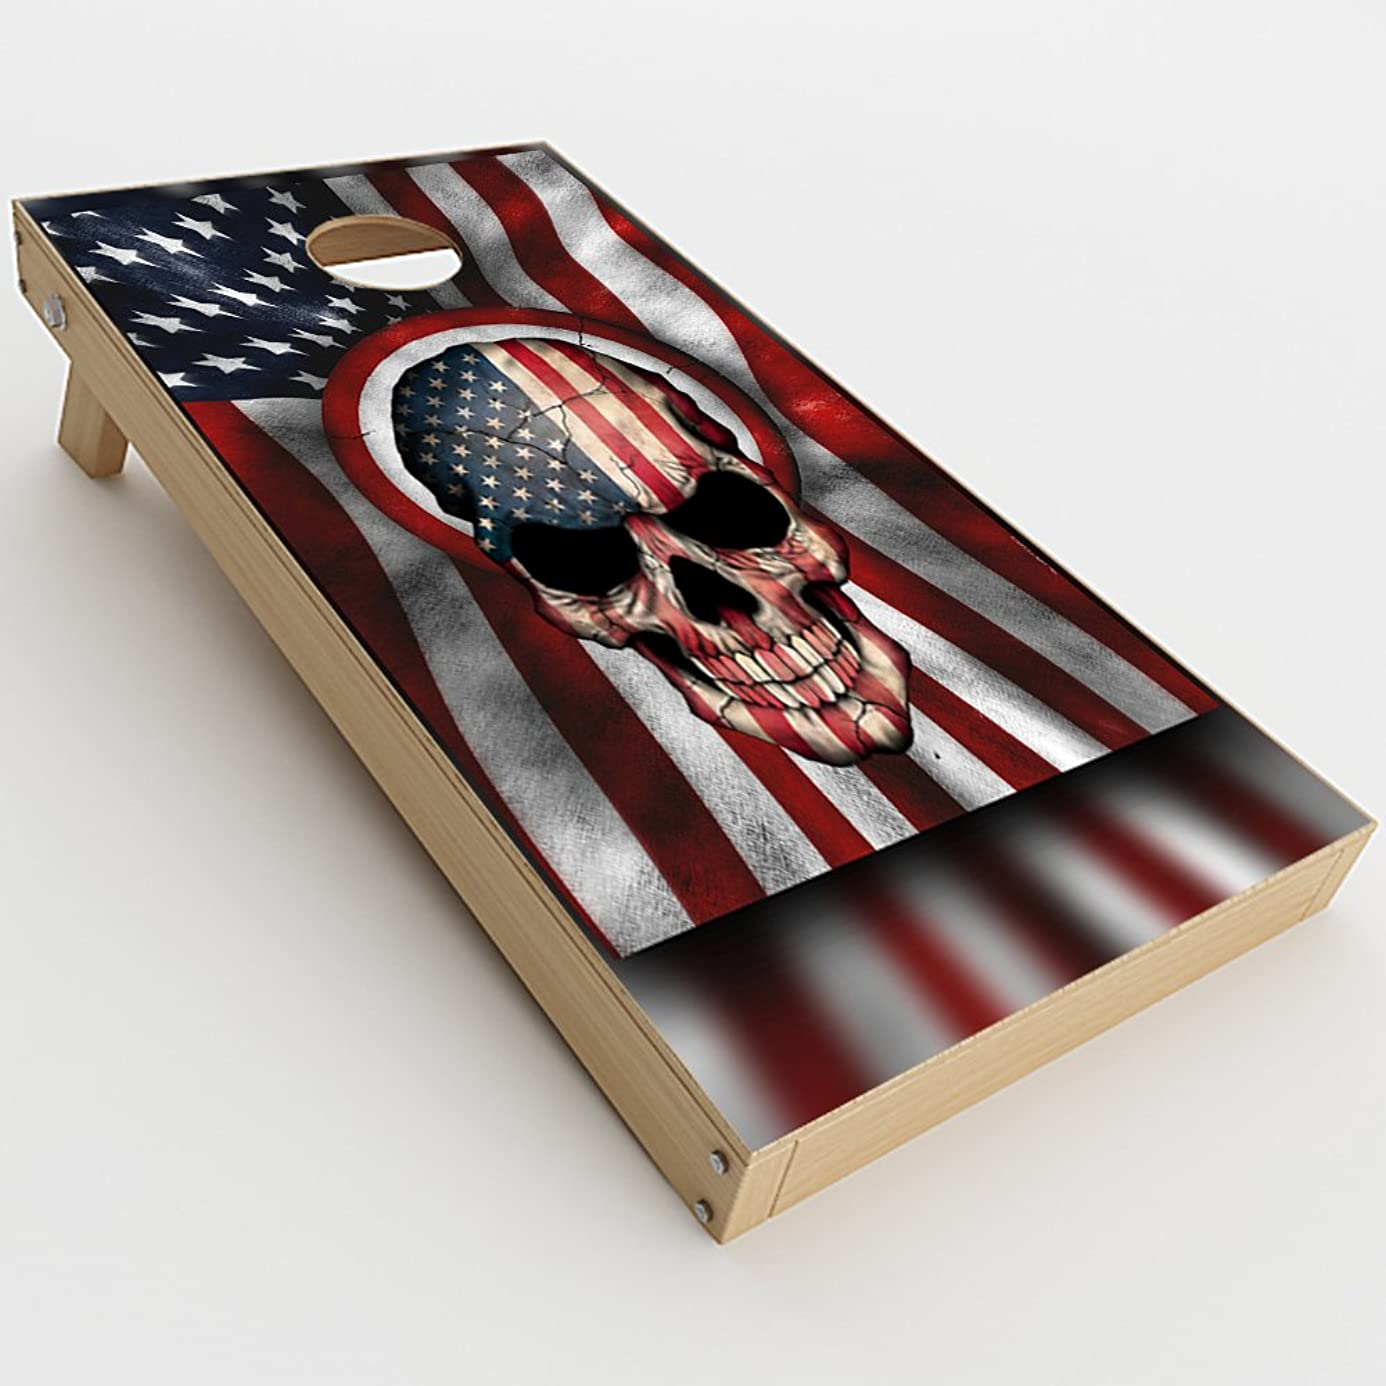 Skin Decal Vinyl Wrap for Cornhole Game Board Bag Toss (2xpcs.) Skins Stickers Cover / America Skull Military USA Murica